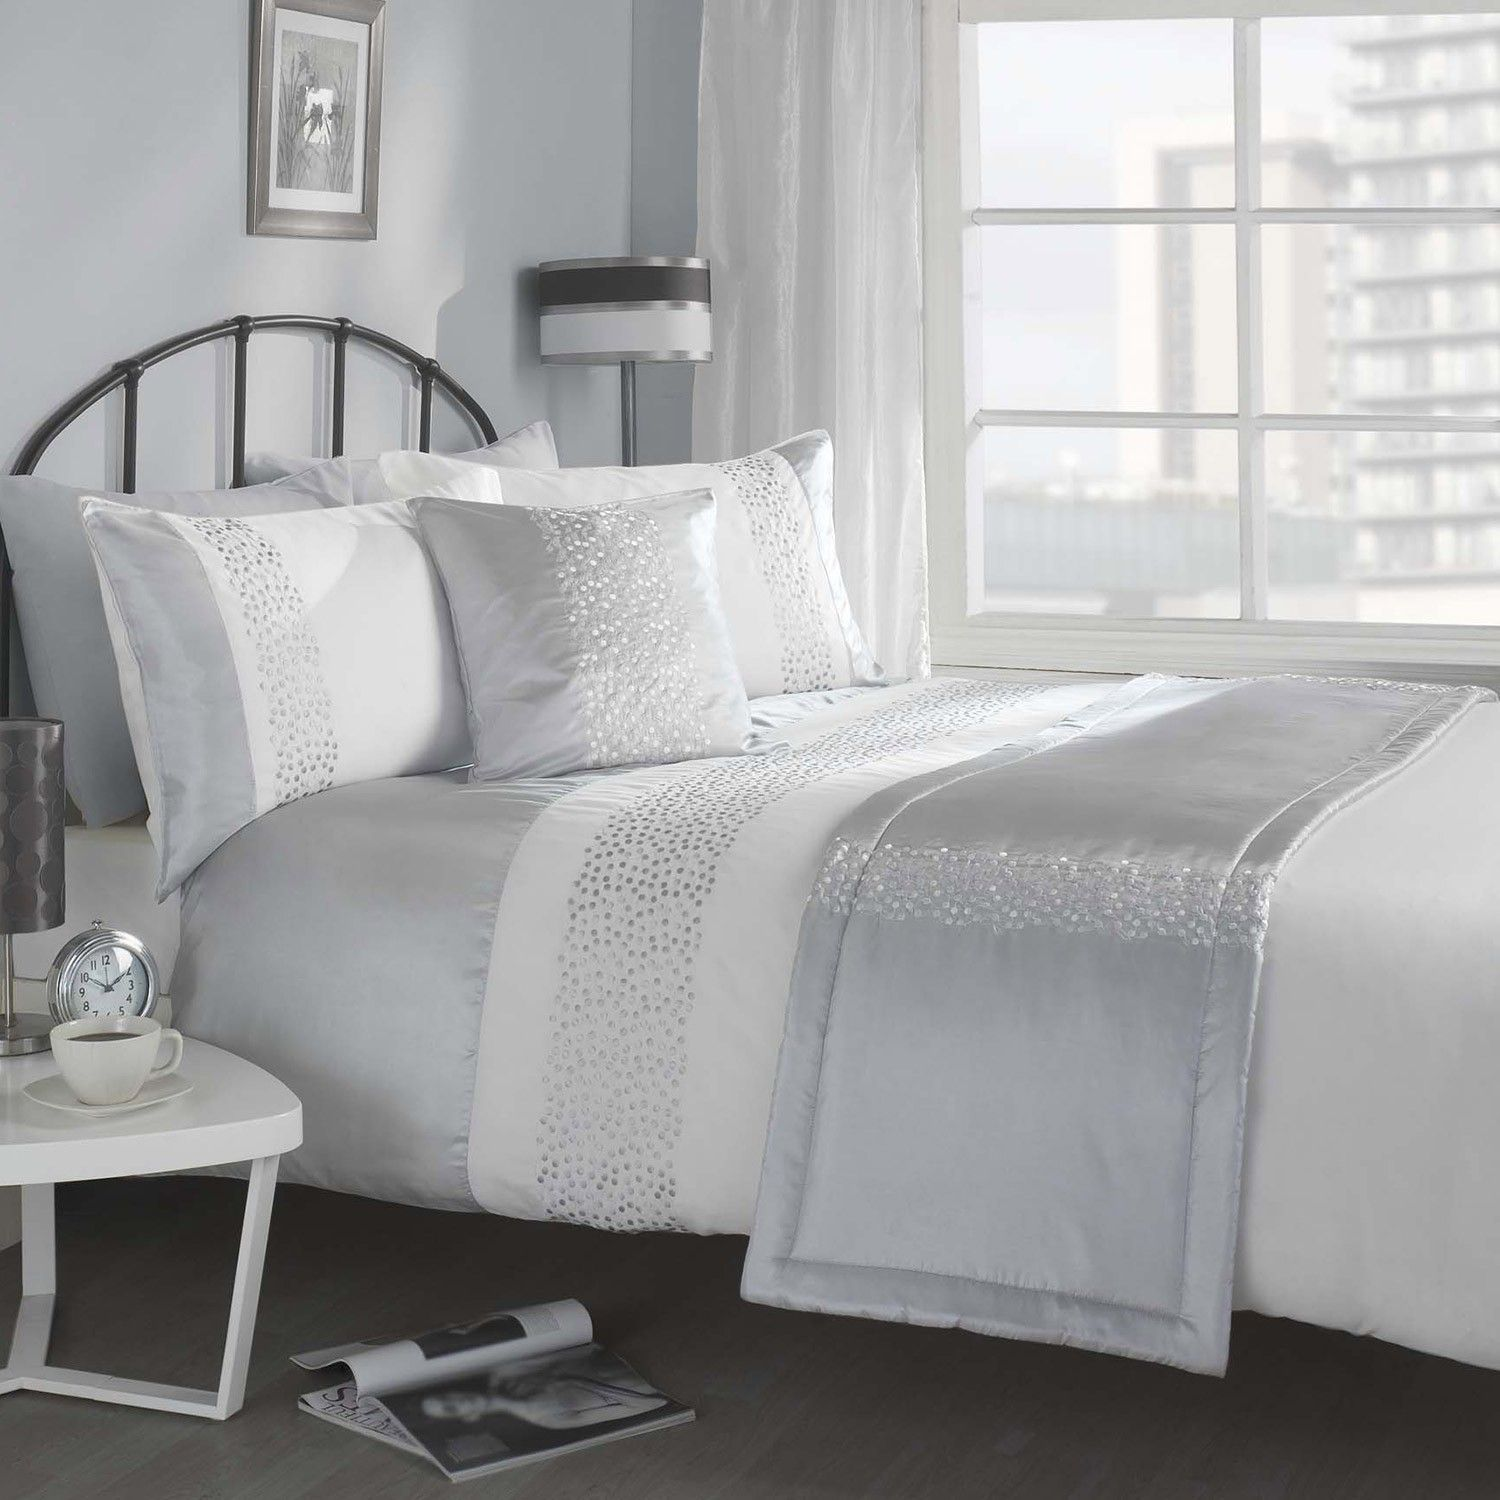 mode silver white luxury 5 piece bed in a bag - Bedding In A Bag